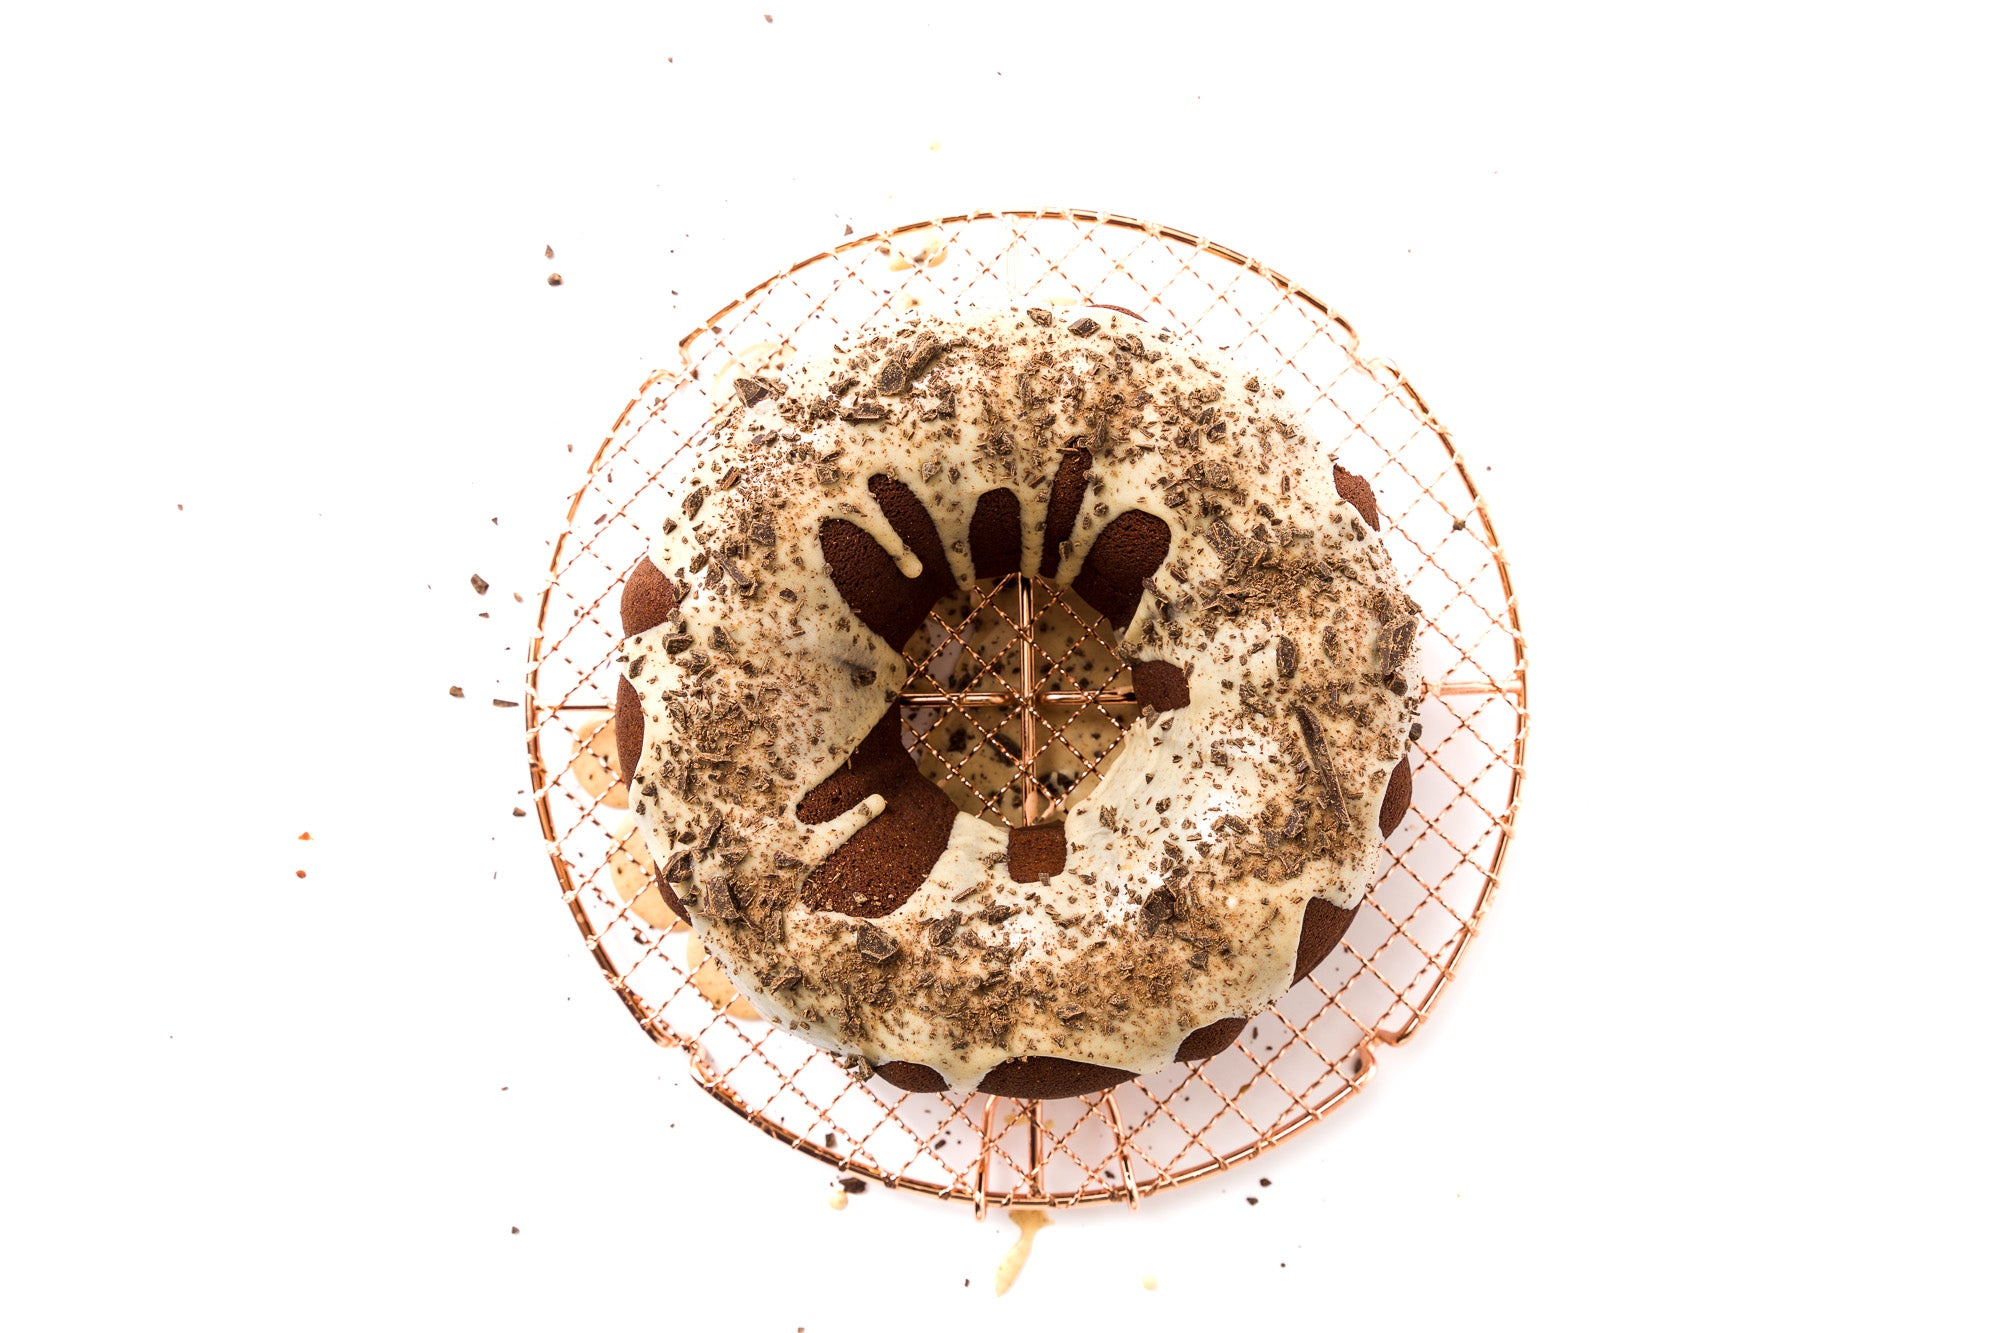 Image from above of Miss Jones Baking Co Chocolate Almond Butter Bundt Cake on baking rack